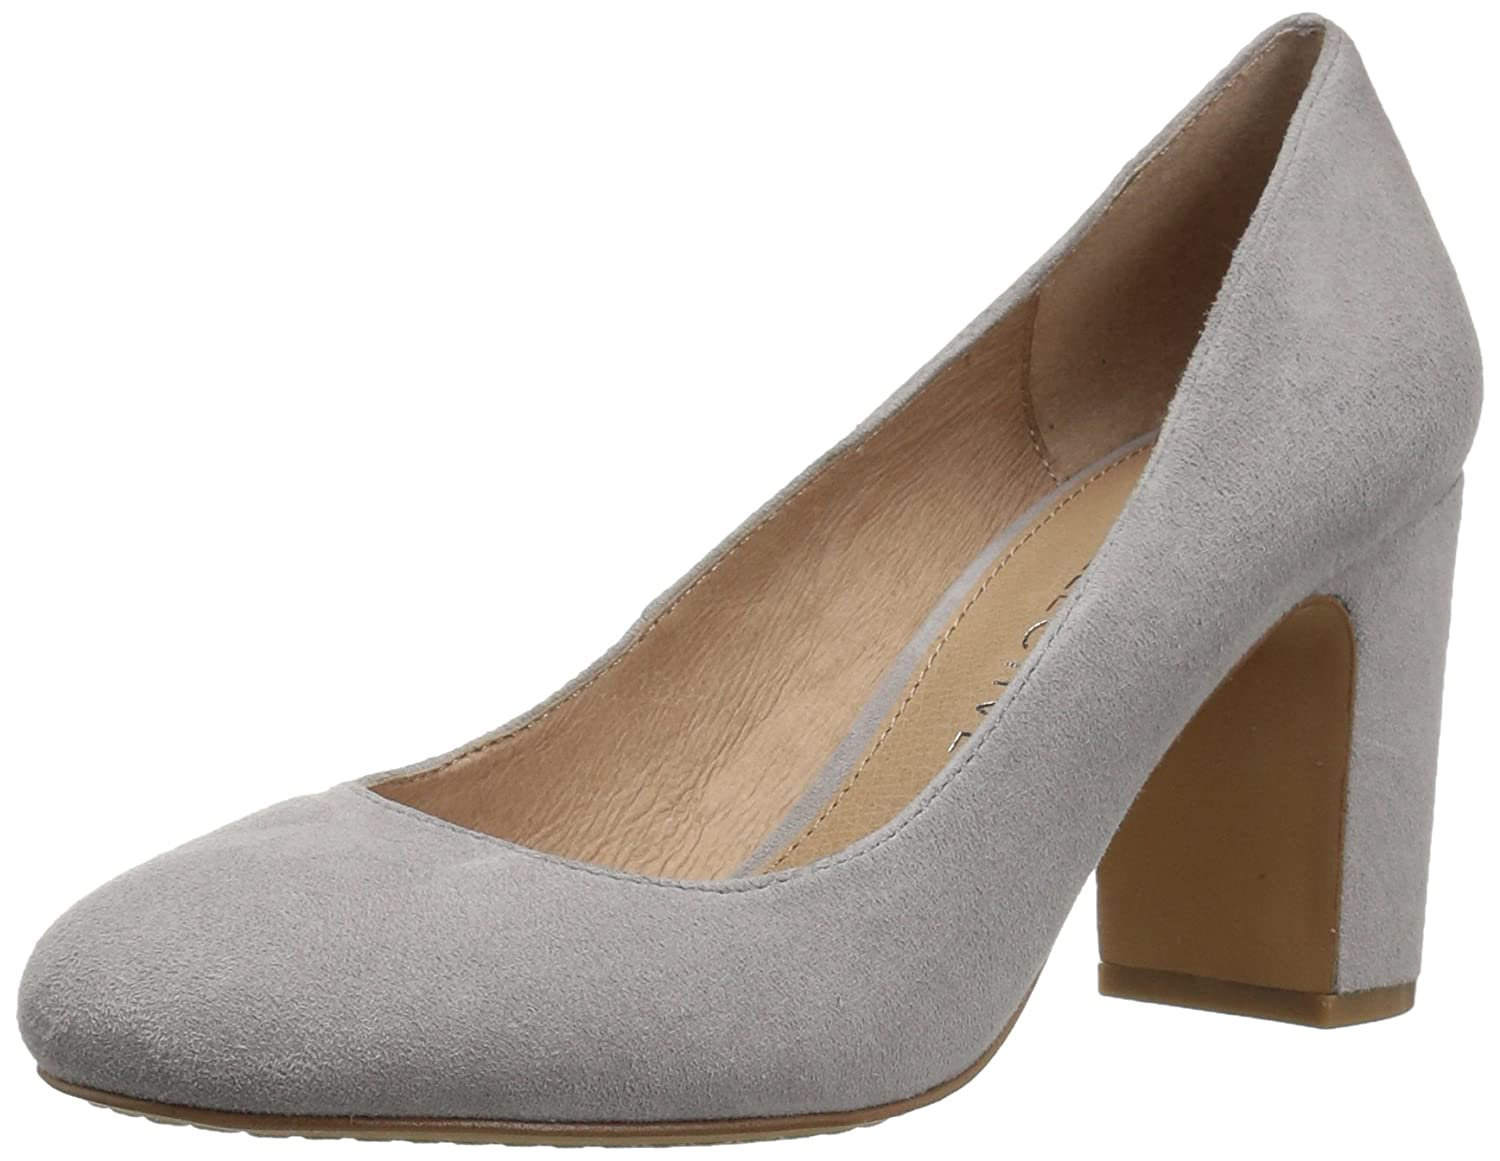 206 Collective Women's Coyle Round Toe Block Heel High Pump B0789FHVW9 9.5 B(M) US|Gray Suede